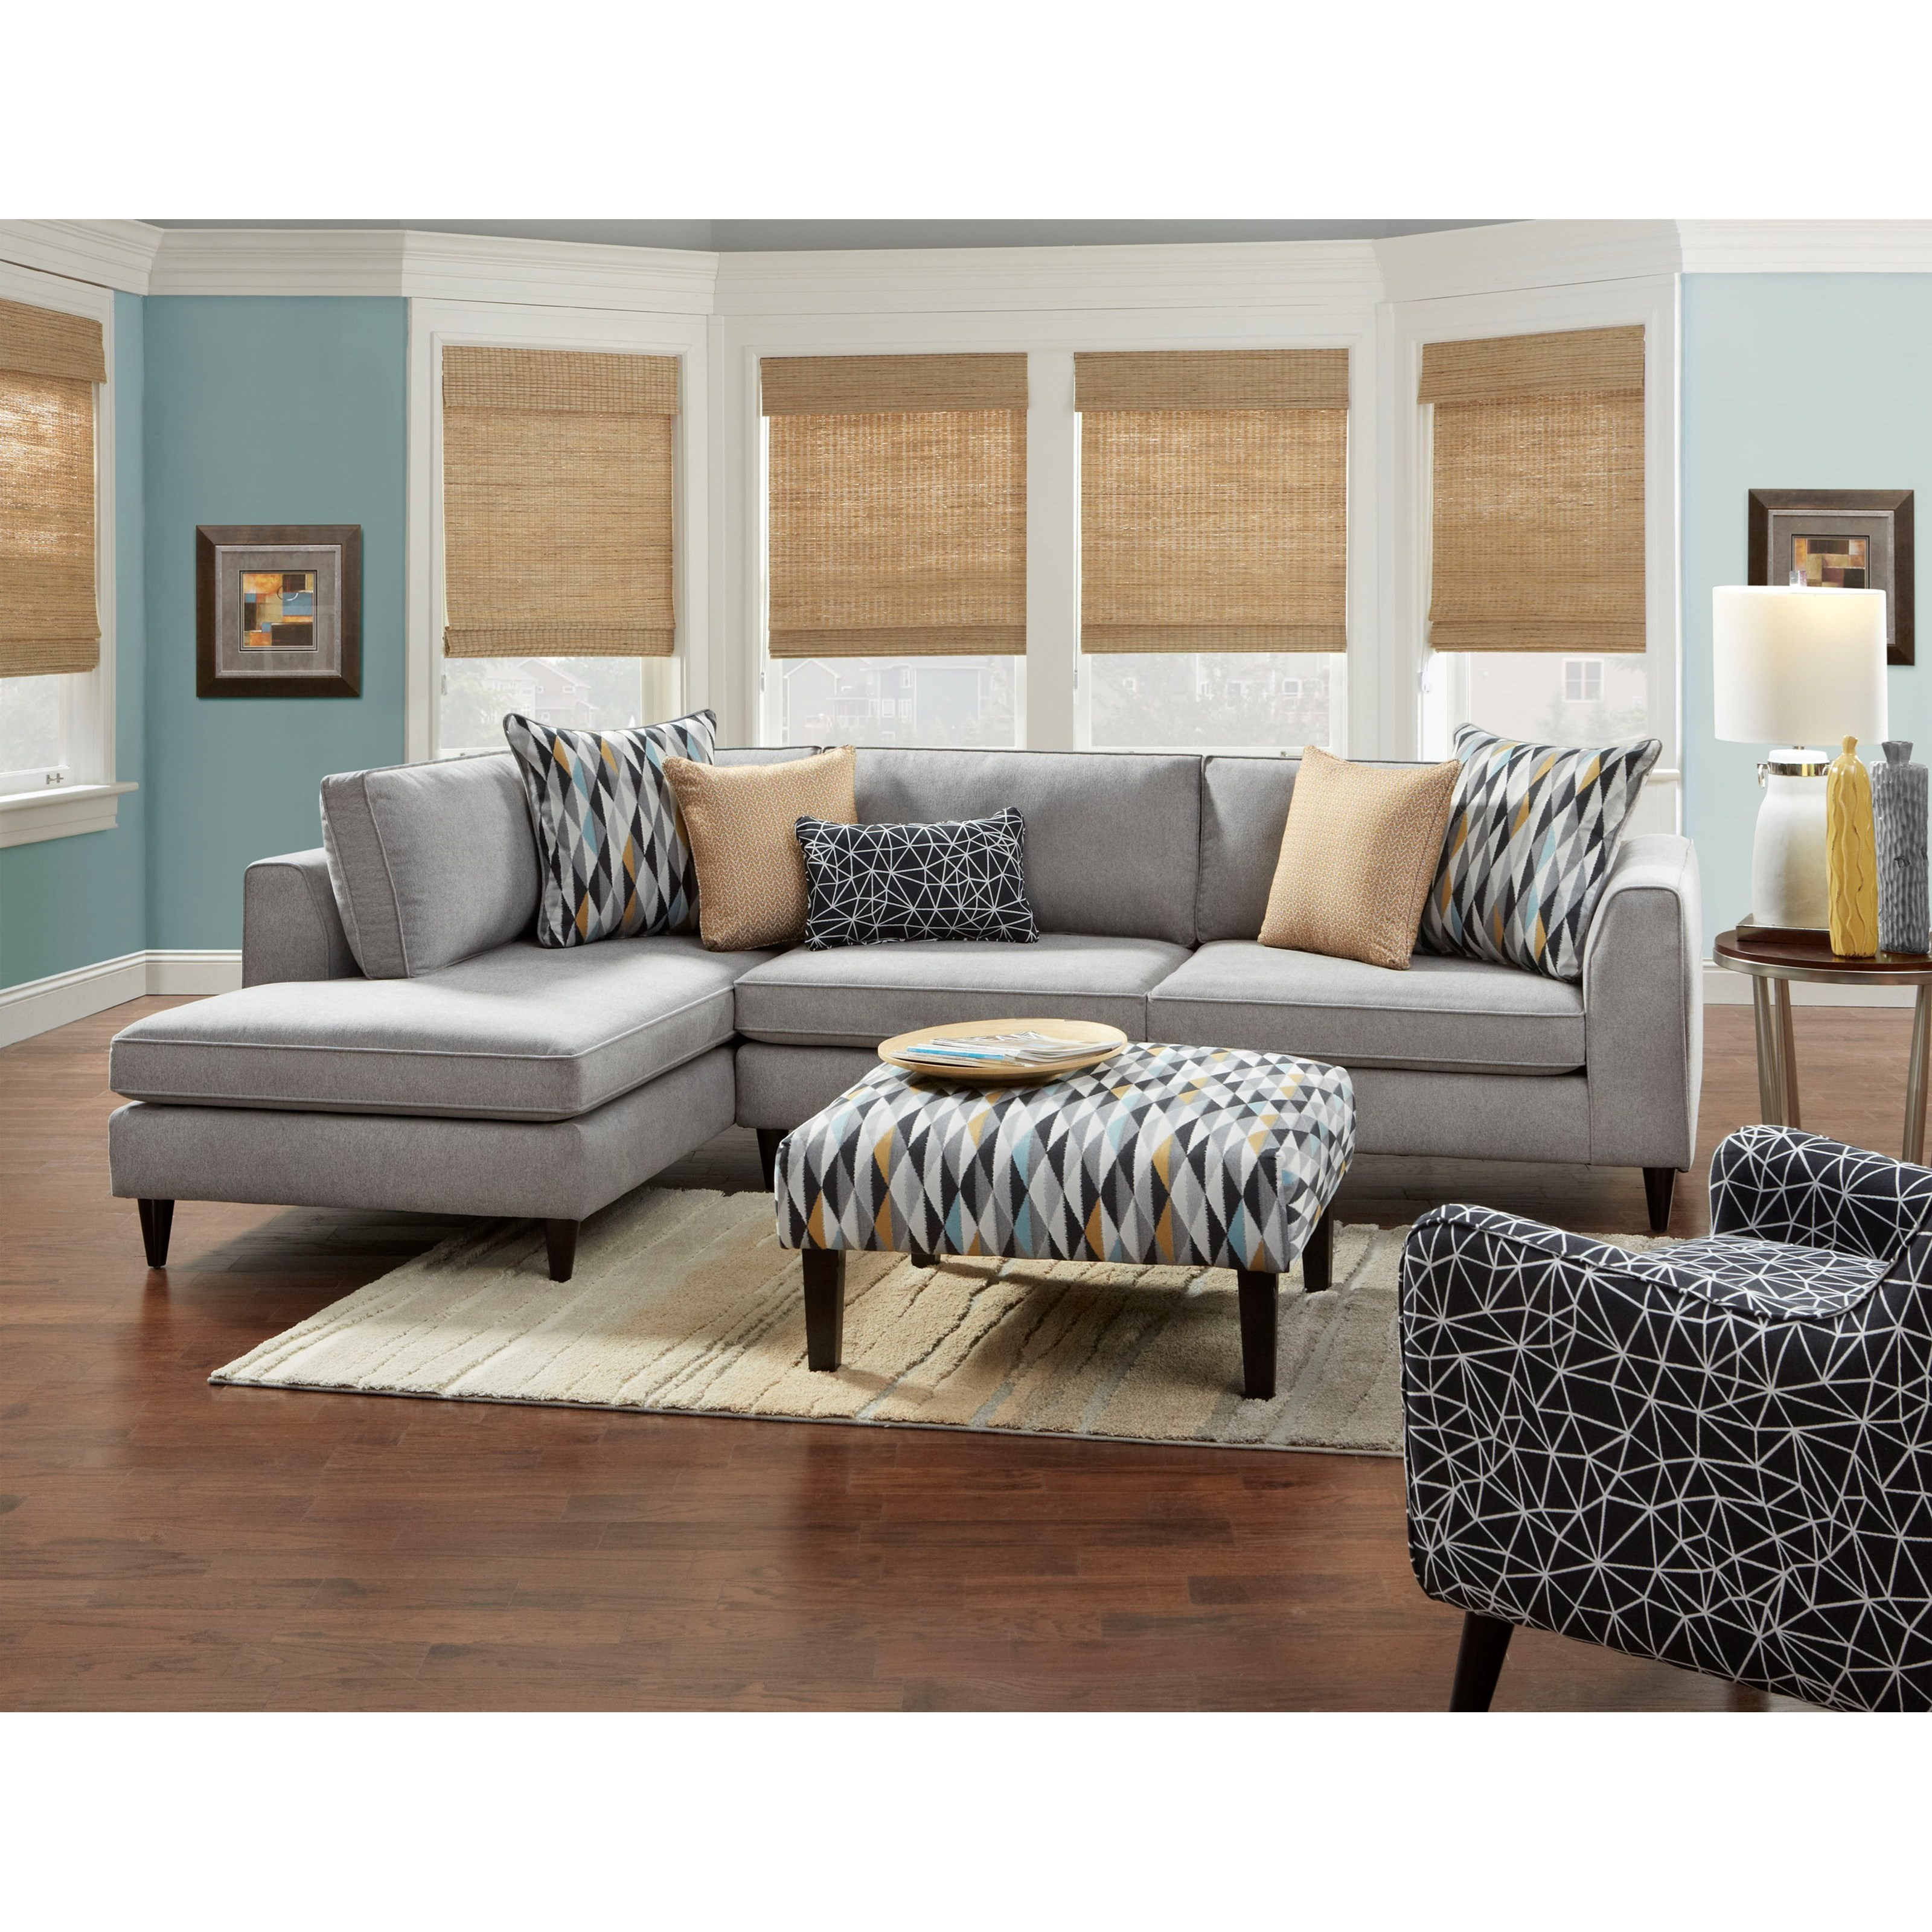 Haley jordan 3400 modern 2 piece sectional with left for 2 piece sectional sofa with chaise